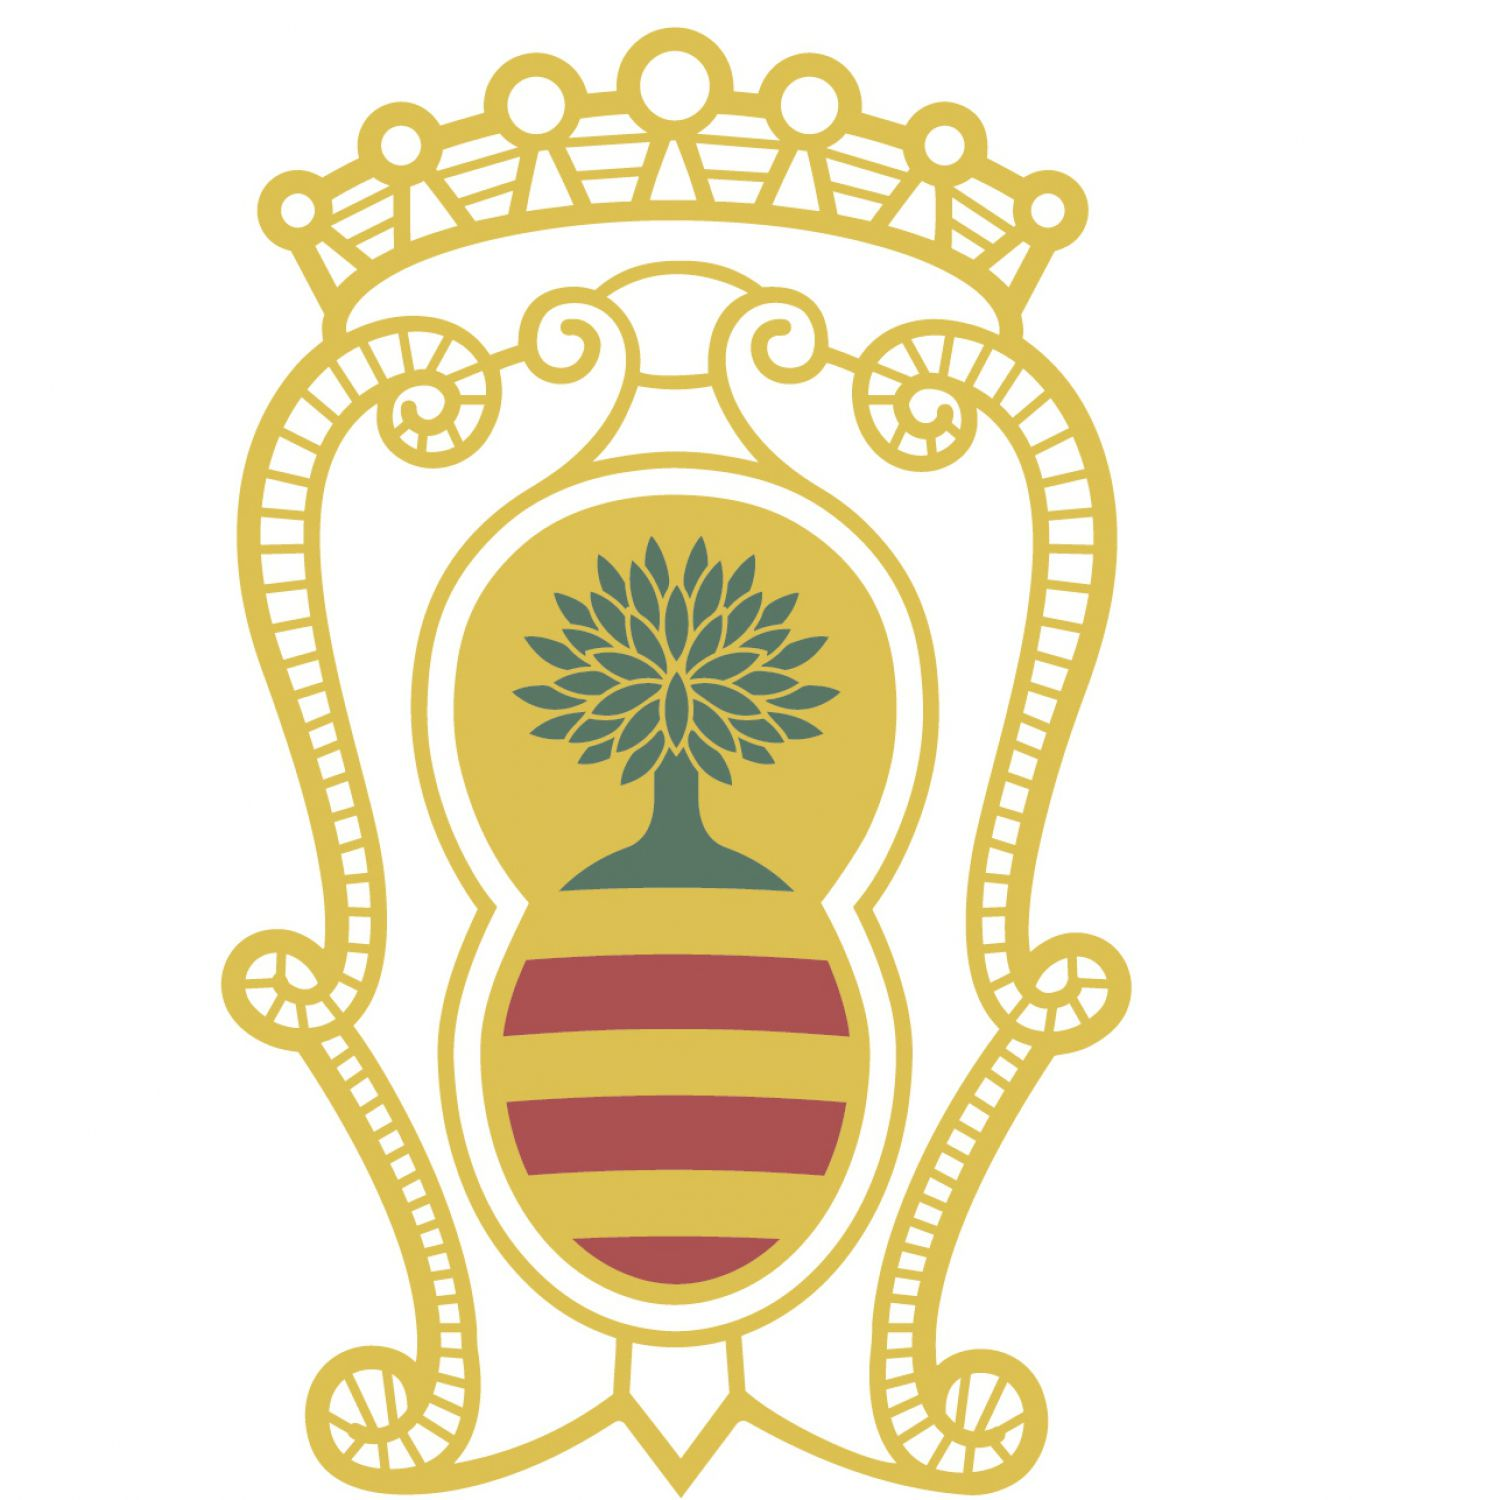 Vin Santo: We are present in the last article of the